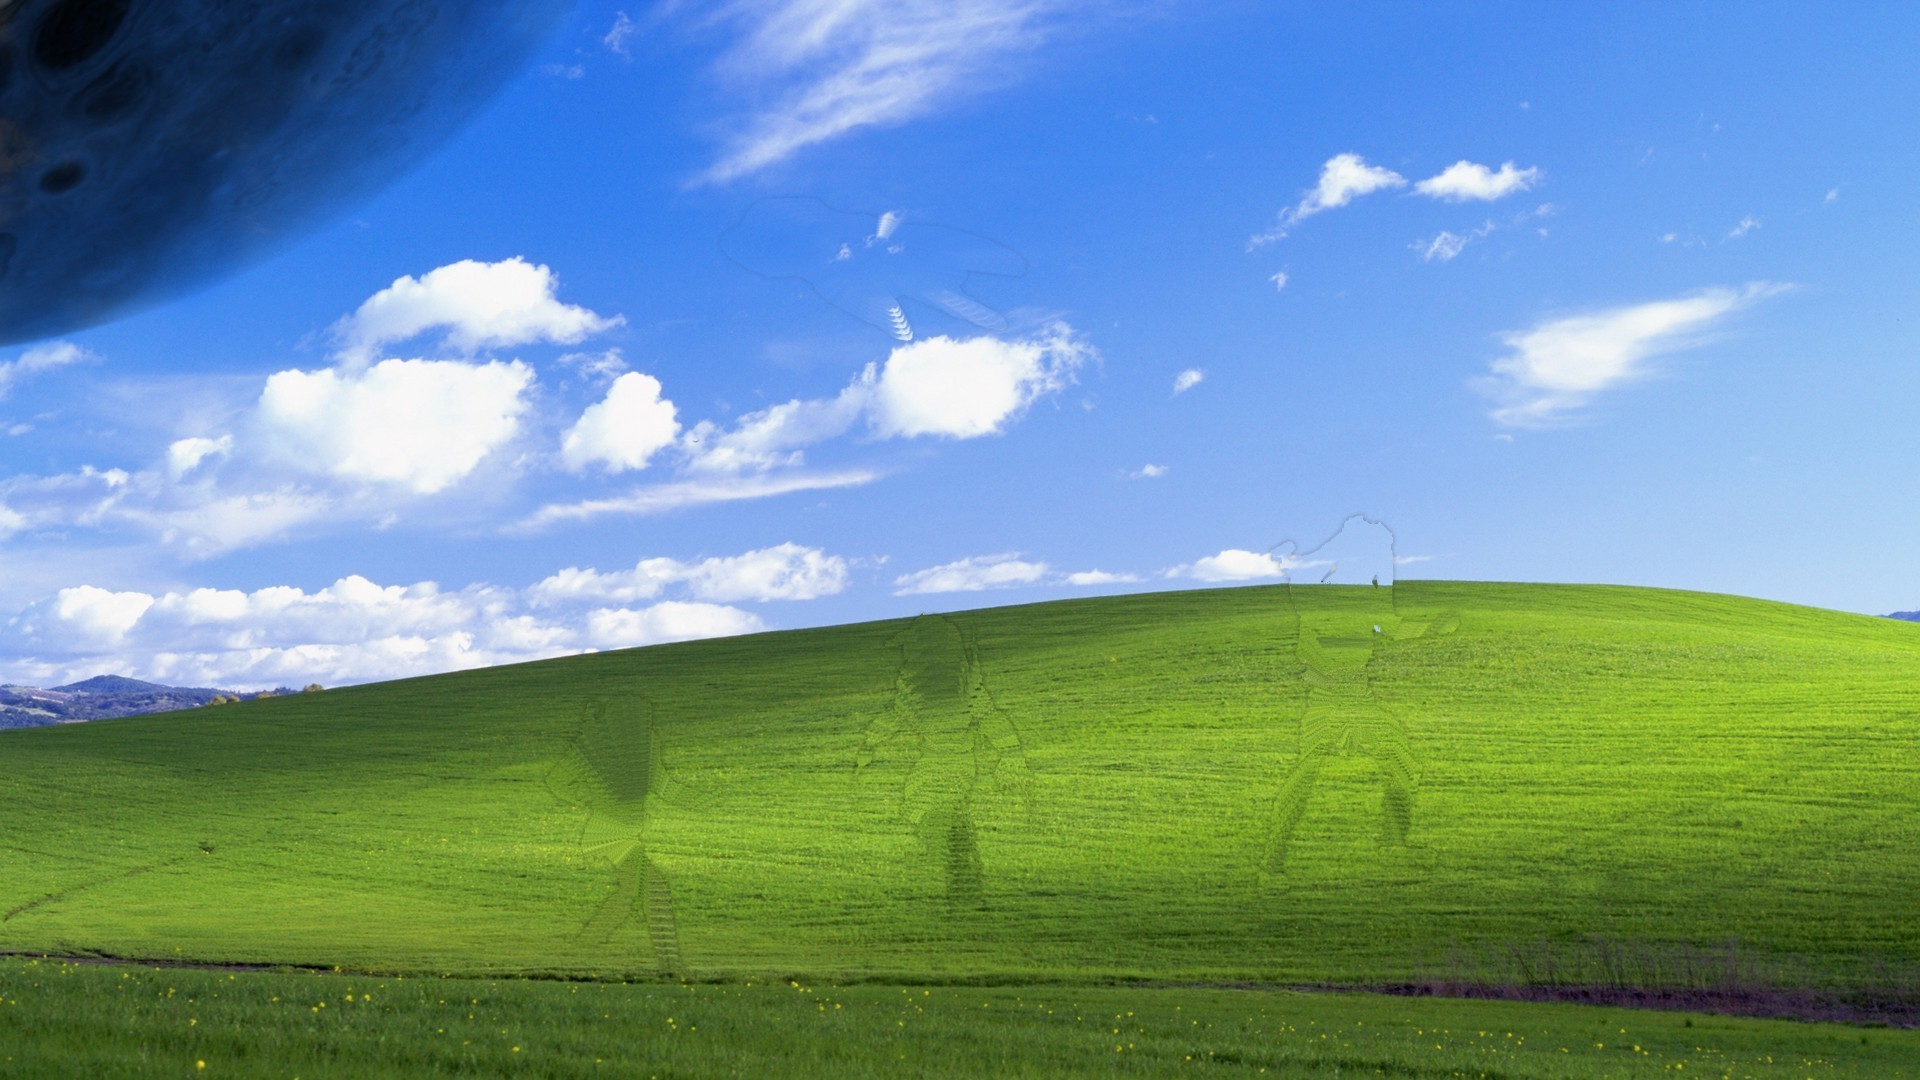 Windows XP theme - Microsoft Community